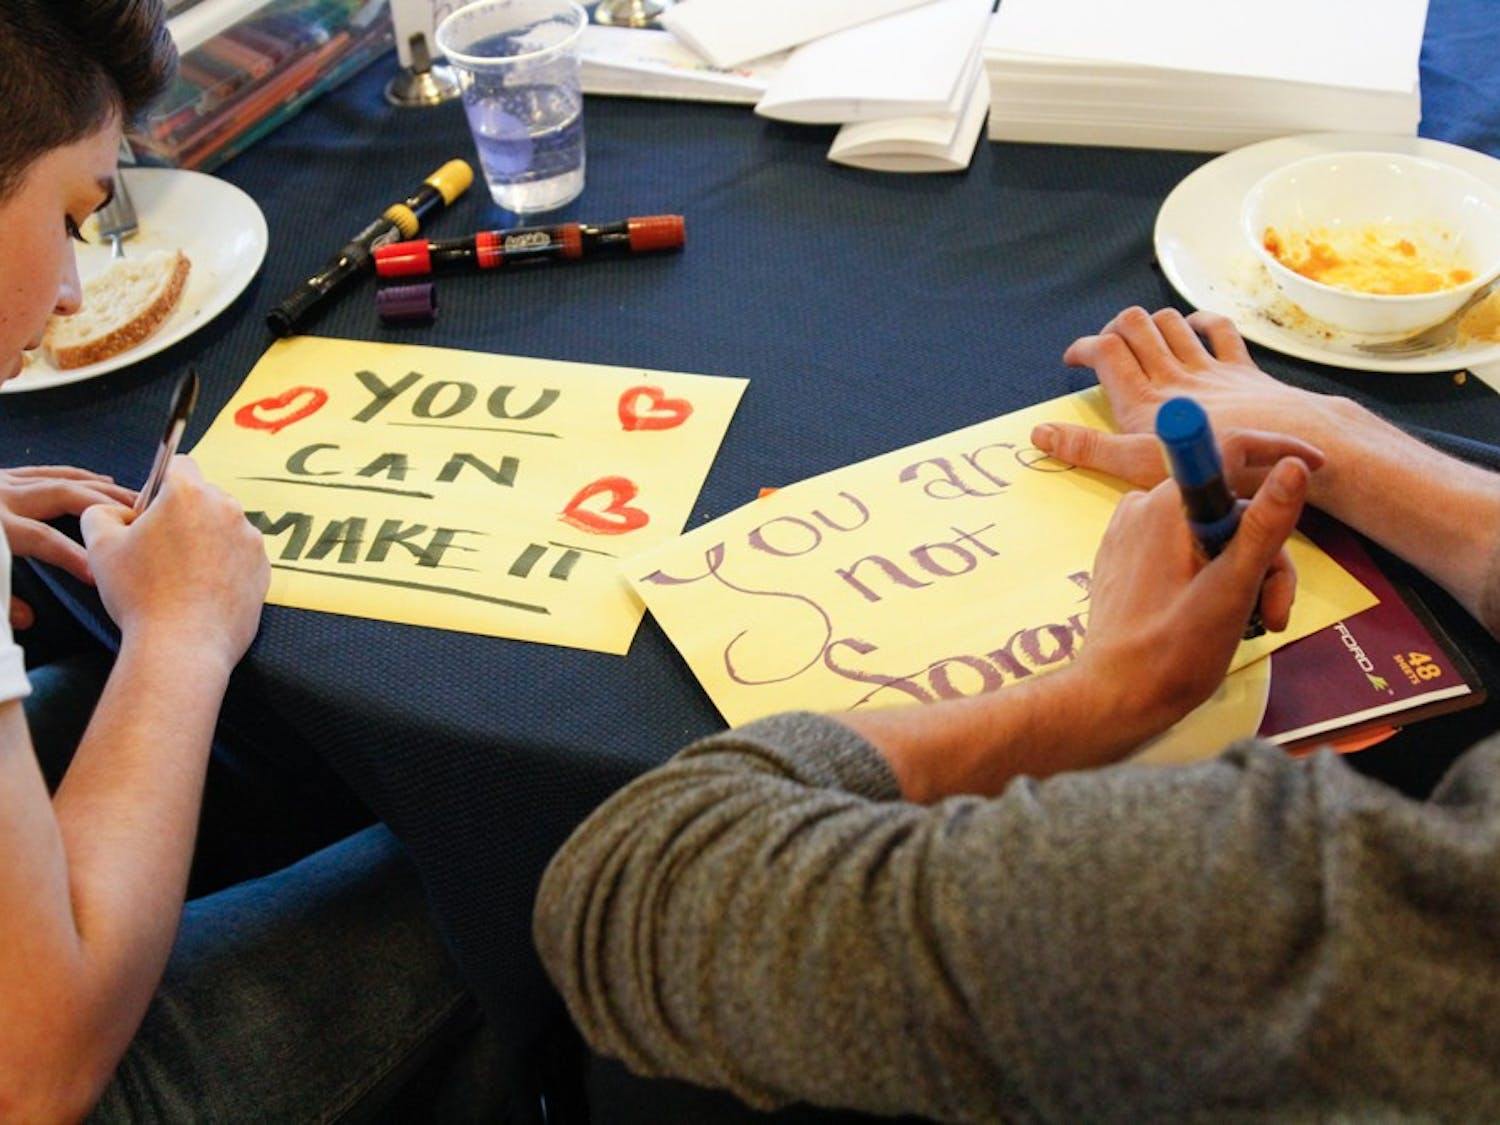 (From left to right) Gaby Taccir, visual designer at R65 labs and Chris Corsi, program assistant at UNC Student Wellness, write letters for Kanautica Zayre-Brown at the Queer Family Gathering dinner at a community building in Carrboro, Tuesday, March 19, 2019. Kanautica is a trans woman incarcerated at a men's prison and who has been in solitary confinement for 17 days. The letters are meant to help Kanautica maintain her mental health during her confinement until she can be moved into a women's facility.